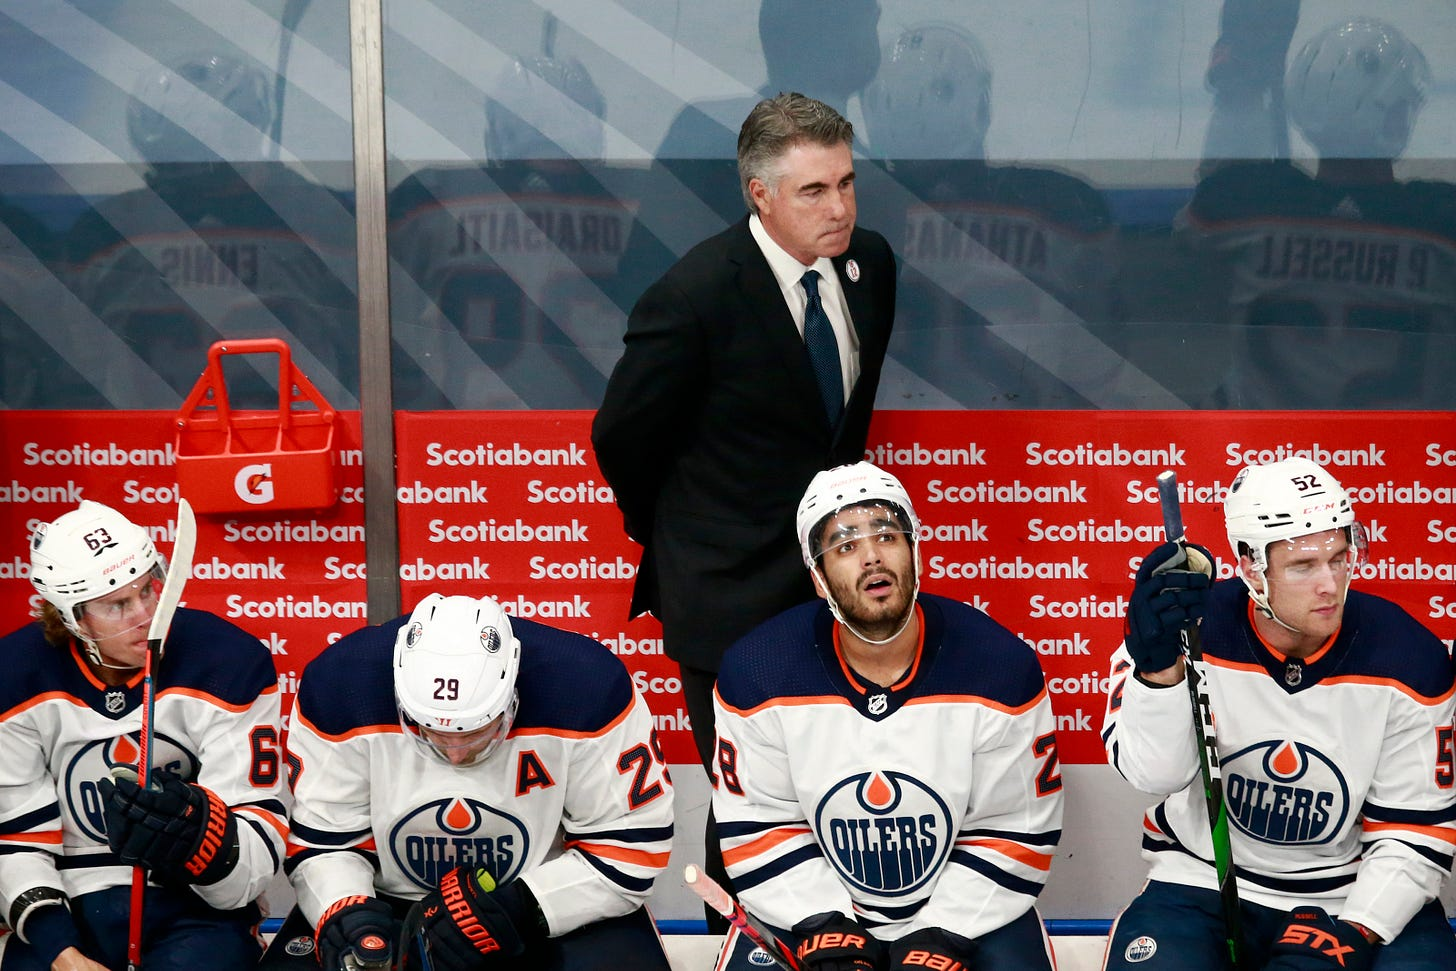 Edmonton Oilers: The 5 aggressive roster moves made by Dave Tippett